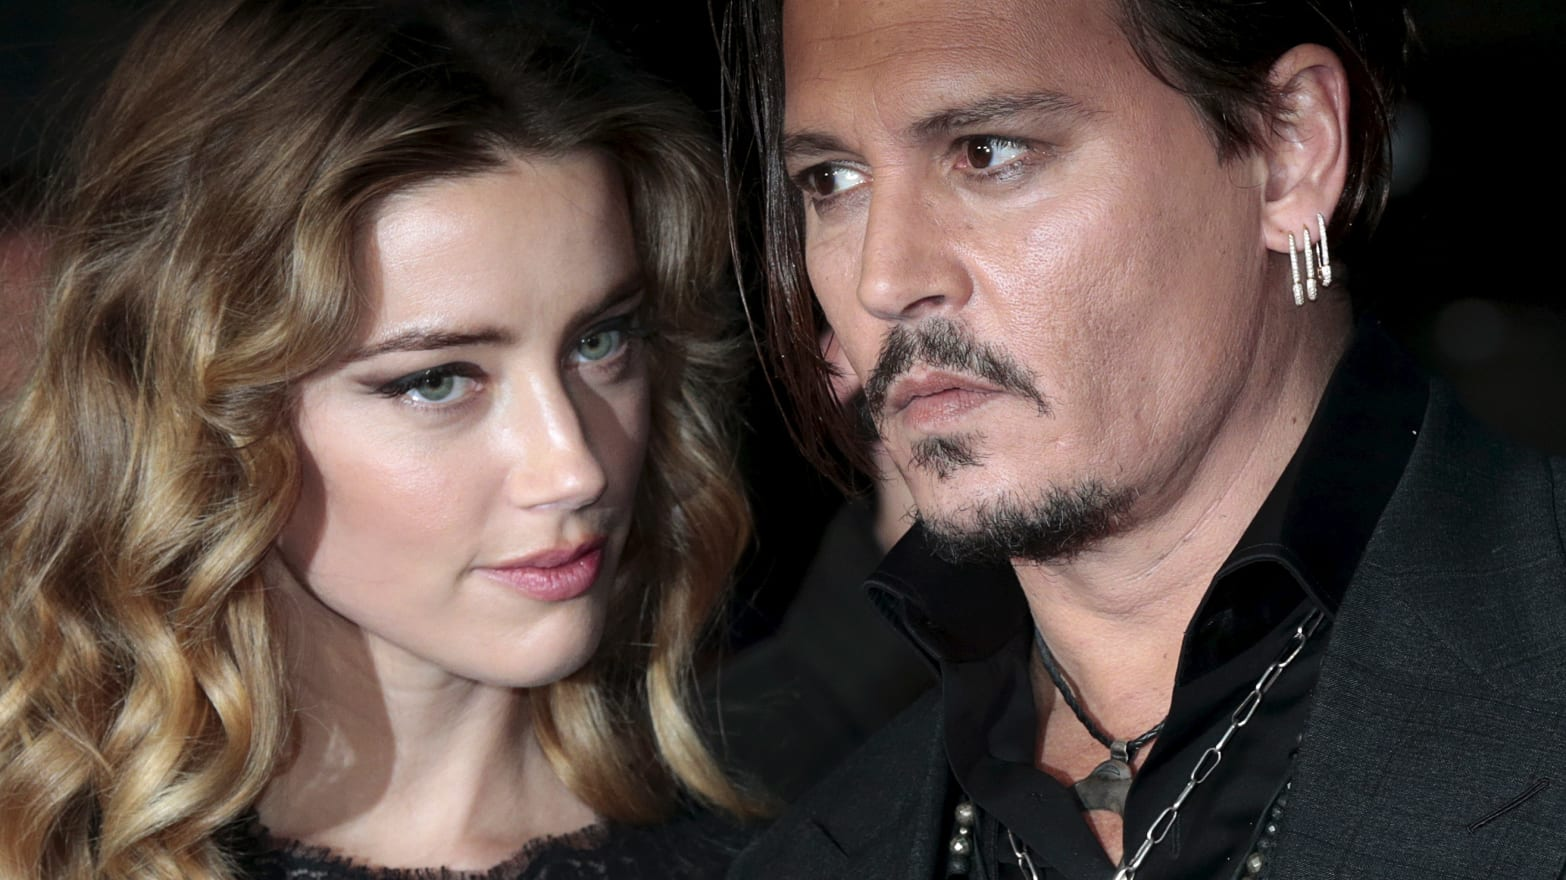 Johnny Depp and his actress wife Amber Heard